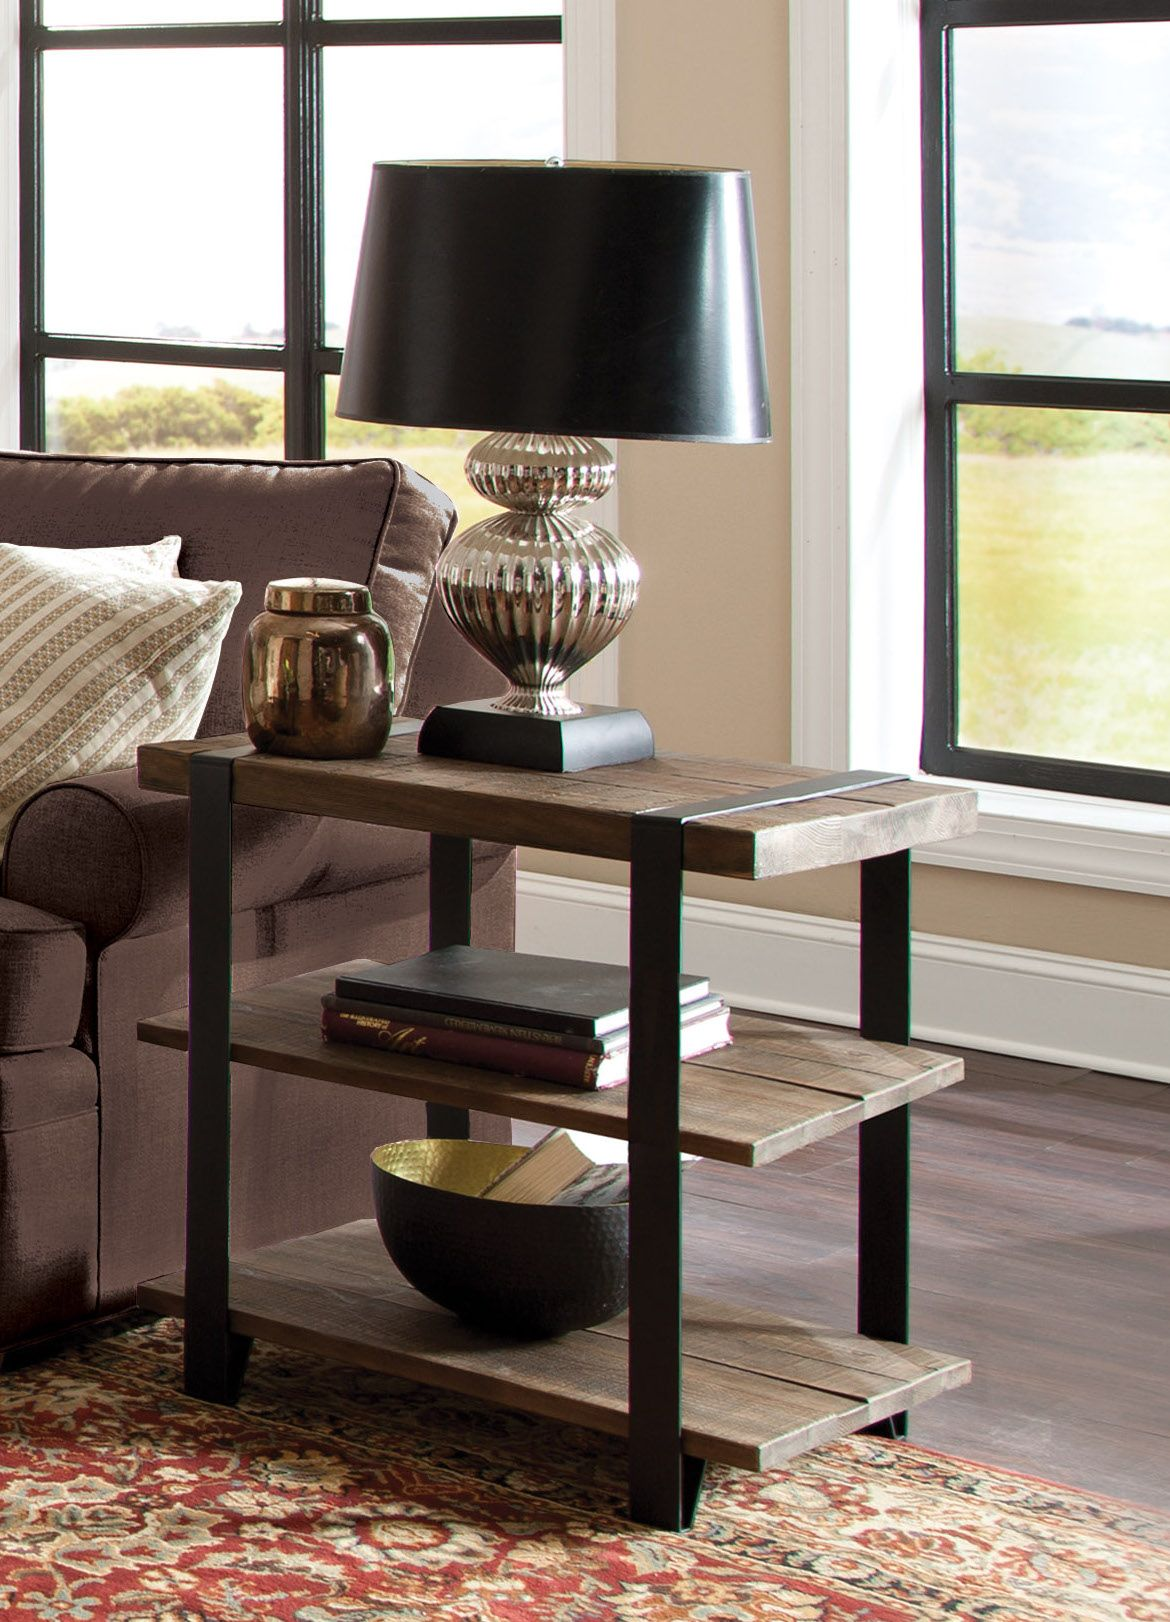 The Modesto End Table will add warmth to any décor with